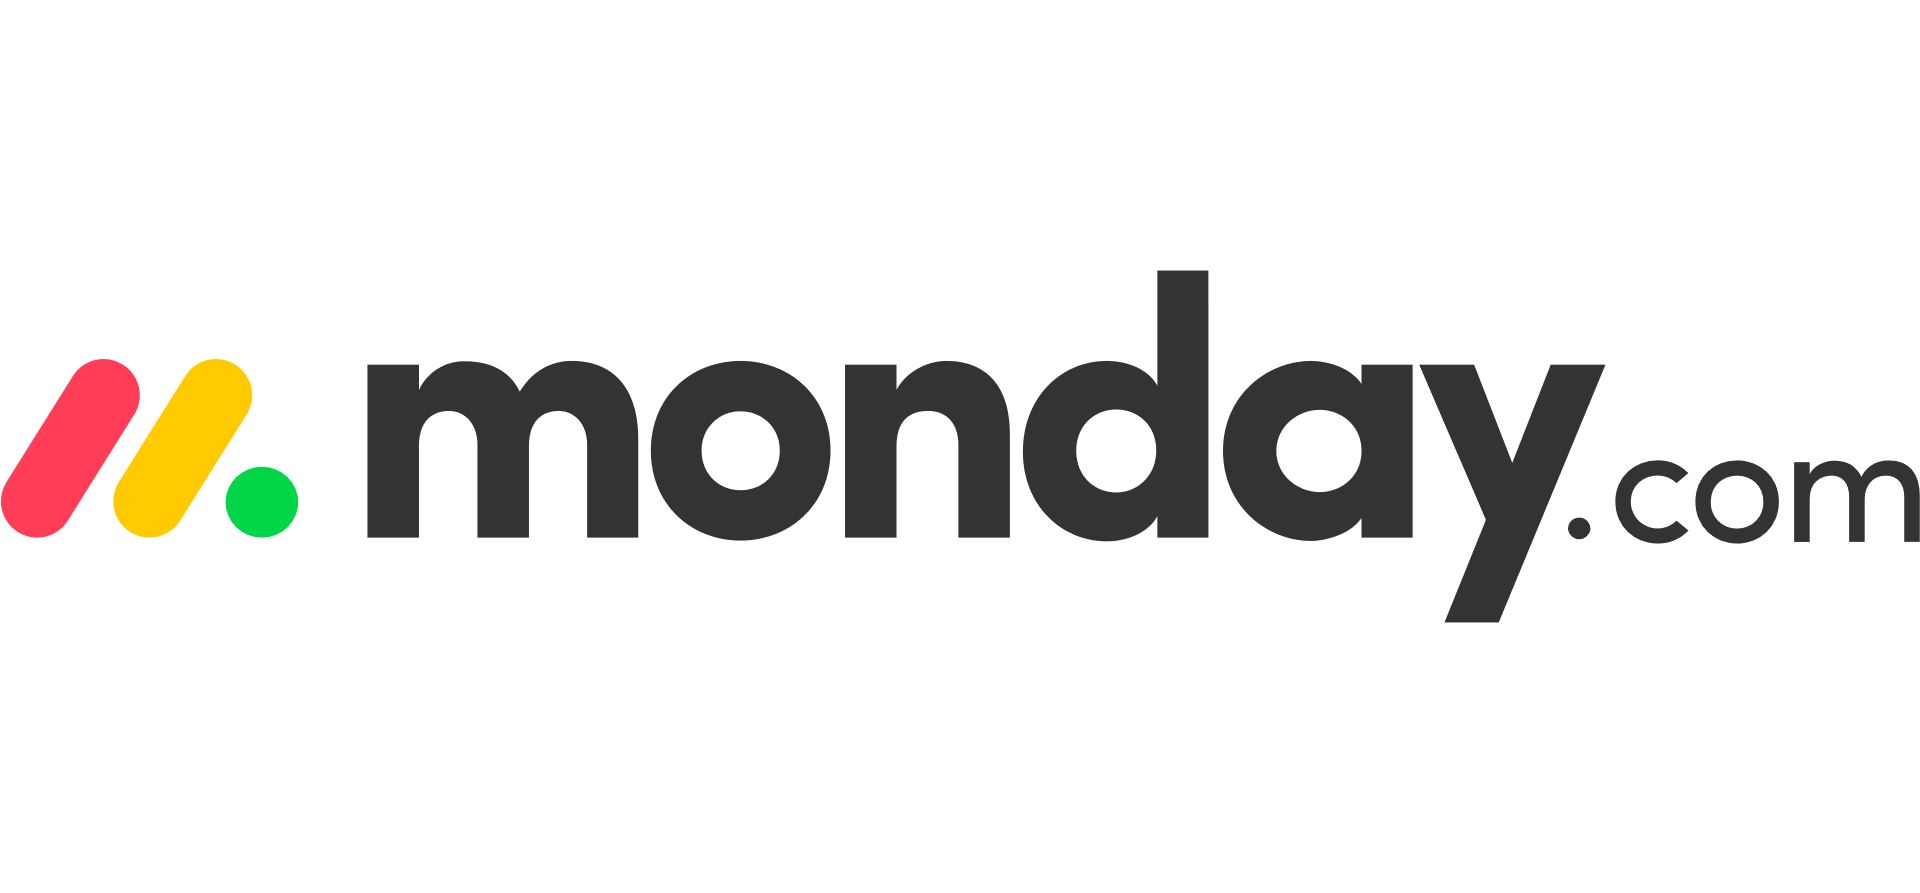 Monday.com workmark, with two dashes, one pink and one yellow, and green period to the left of the text